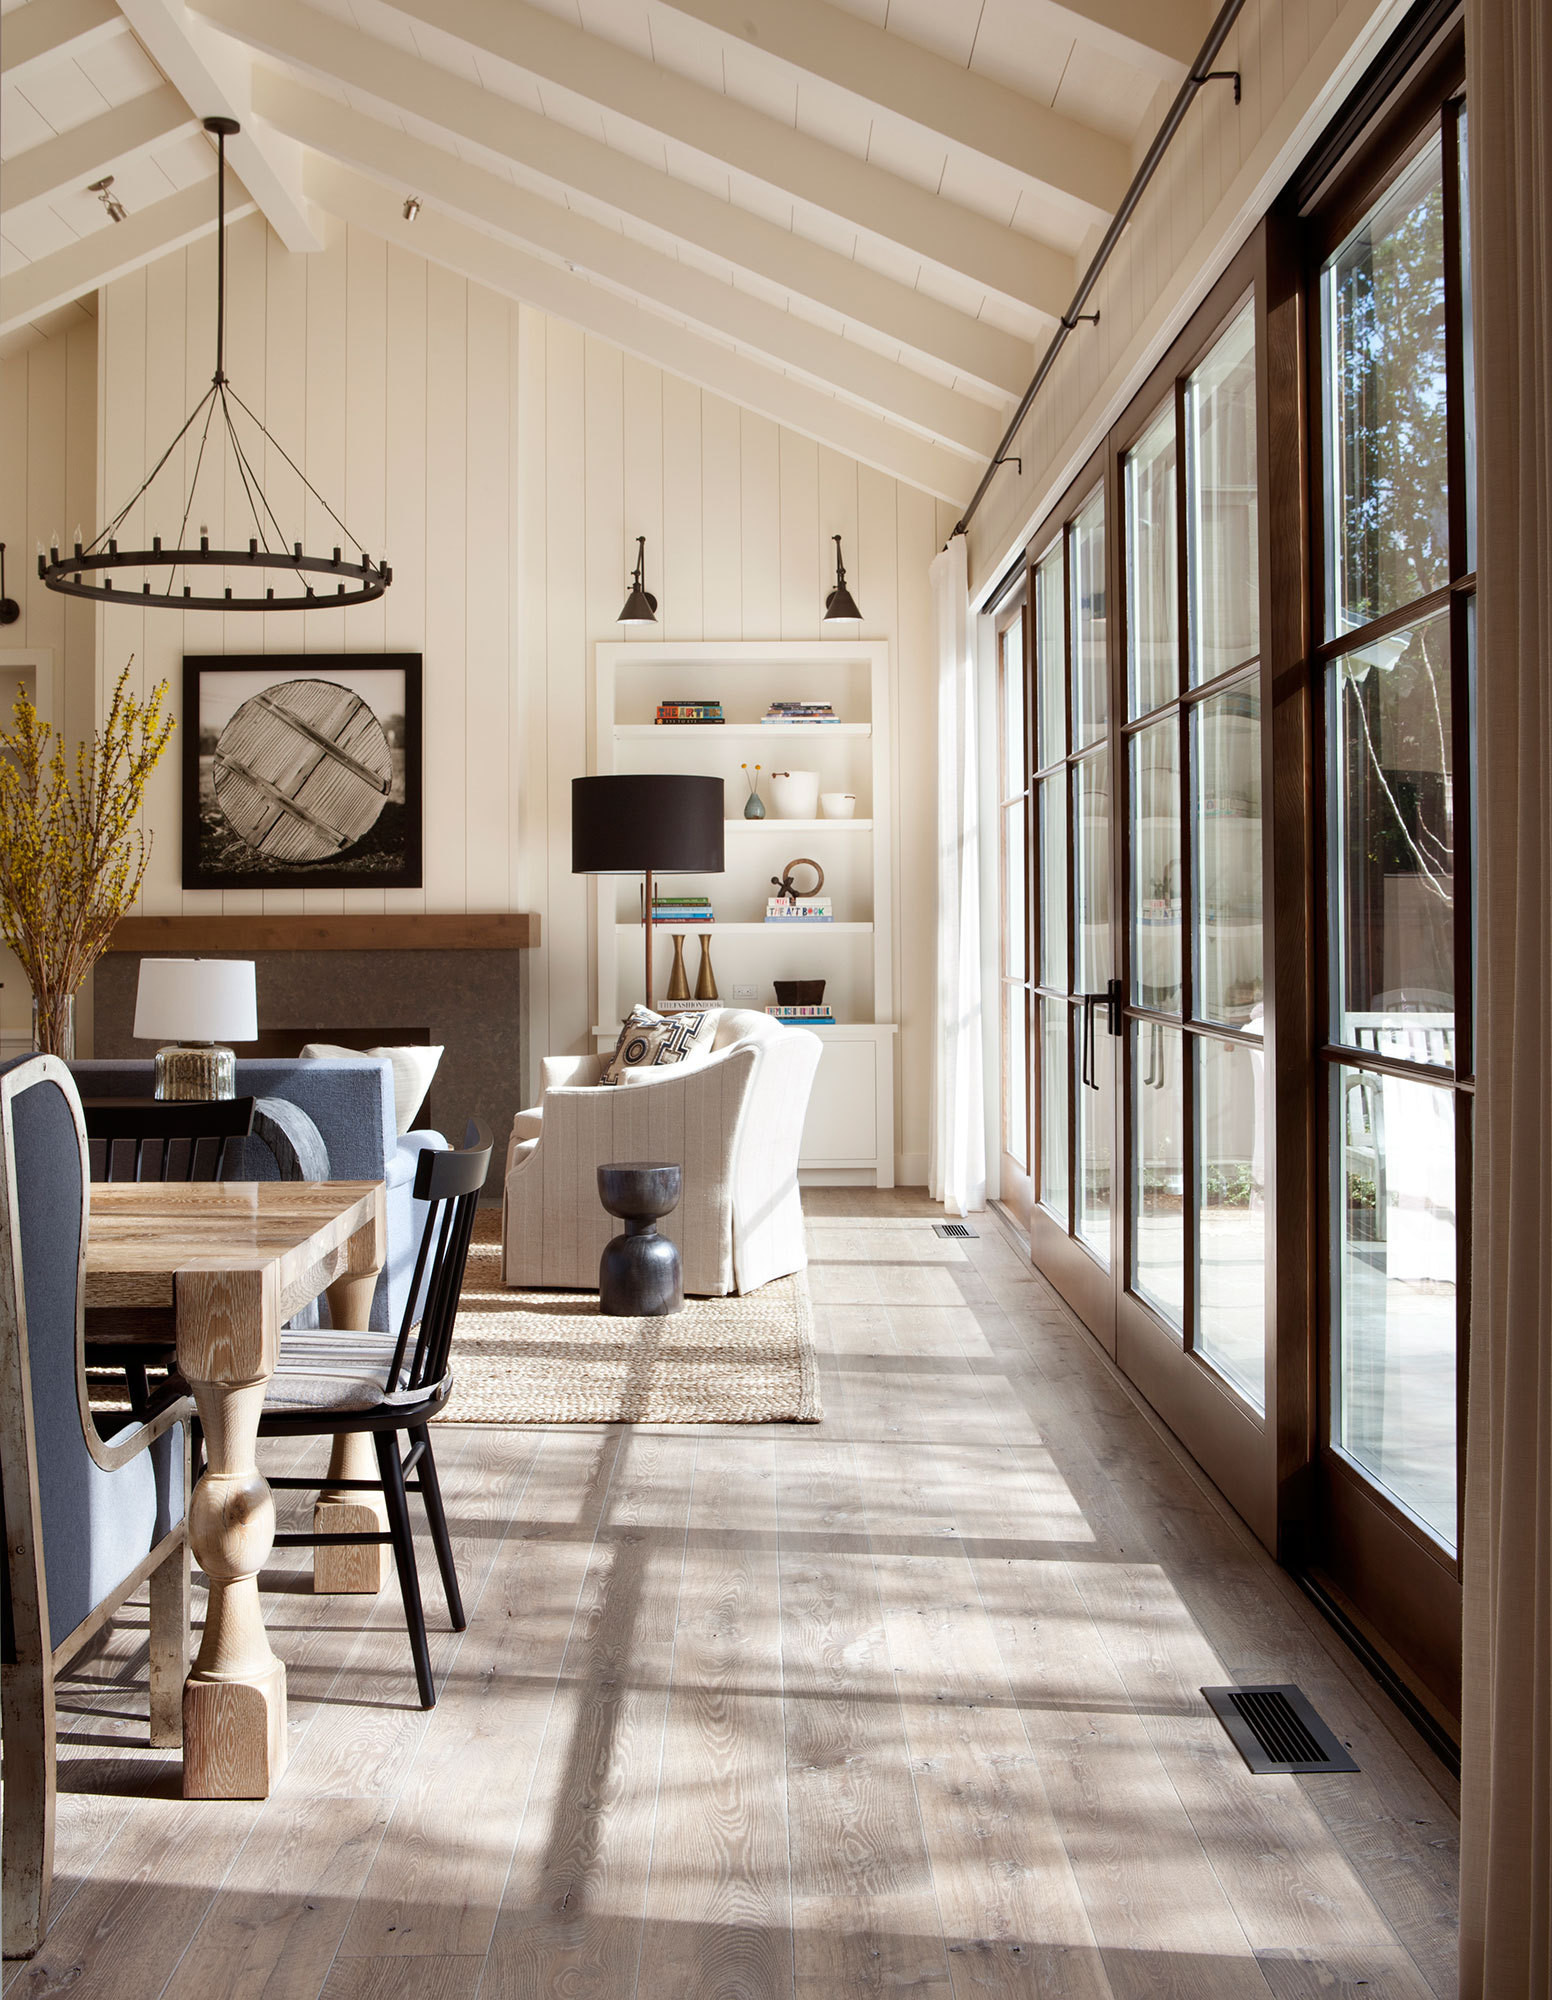 Custom-stained oak hardwood flooring lends rustic ambiance throughout the main living space.